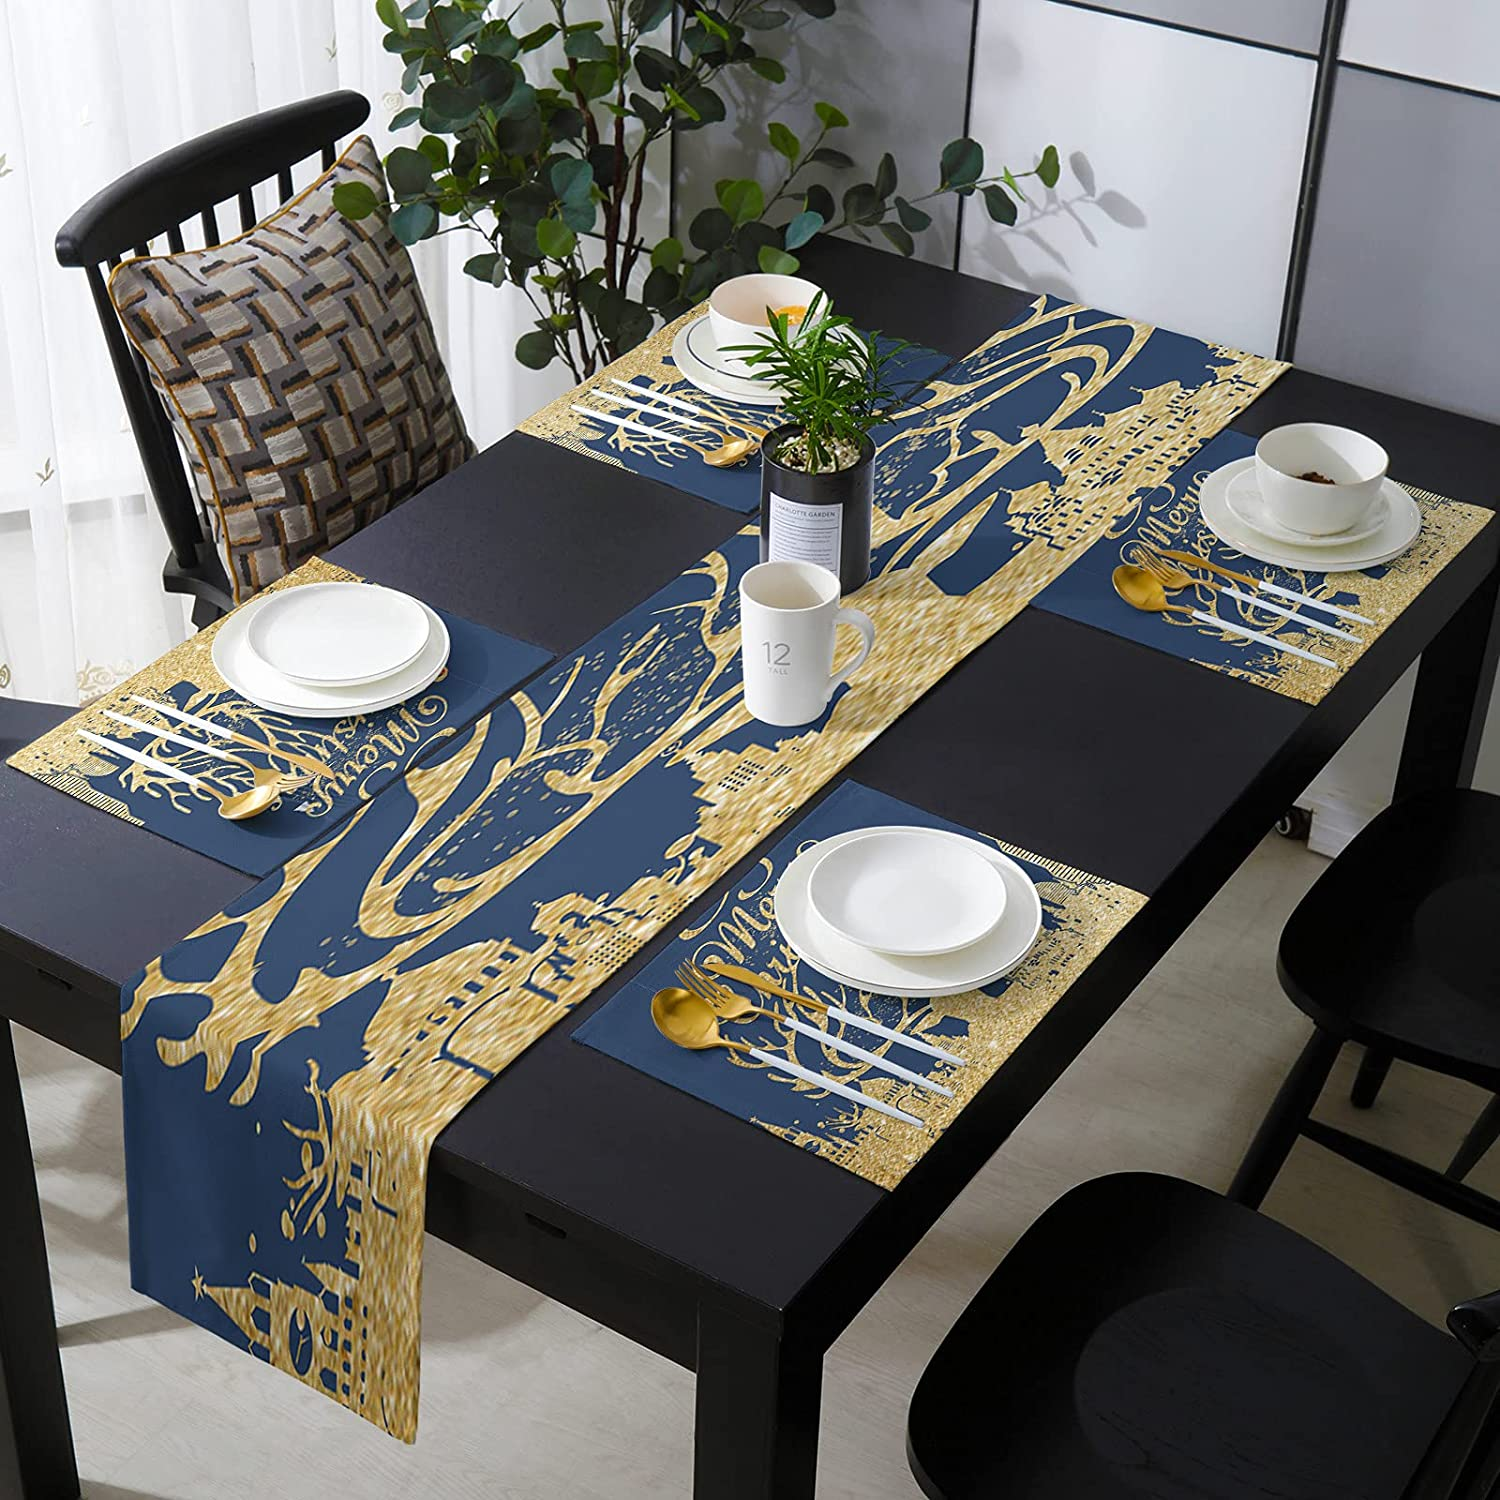 SIGOUYI Elegant Placemats with Matching Runner Golden Spr Table At the Max 47% OFF price